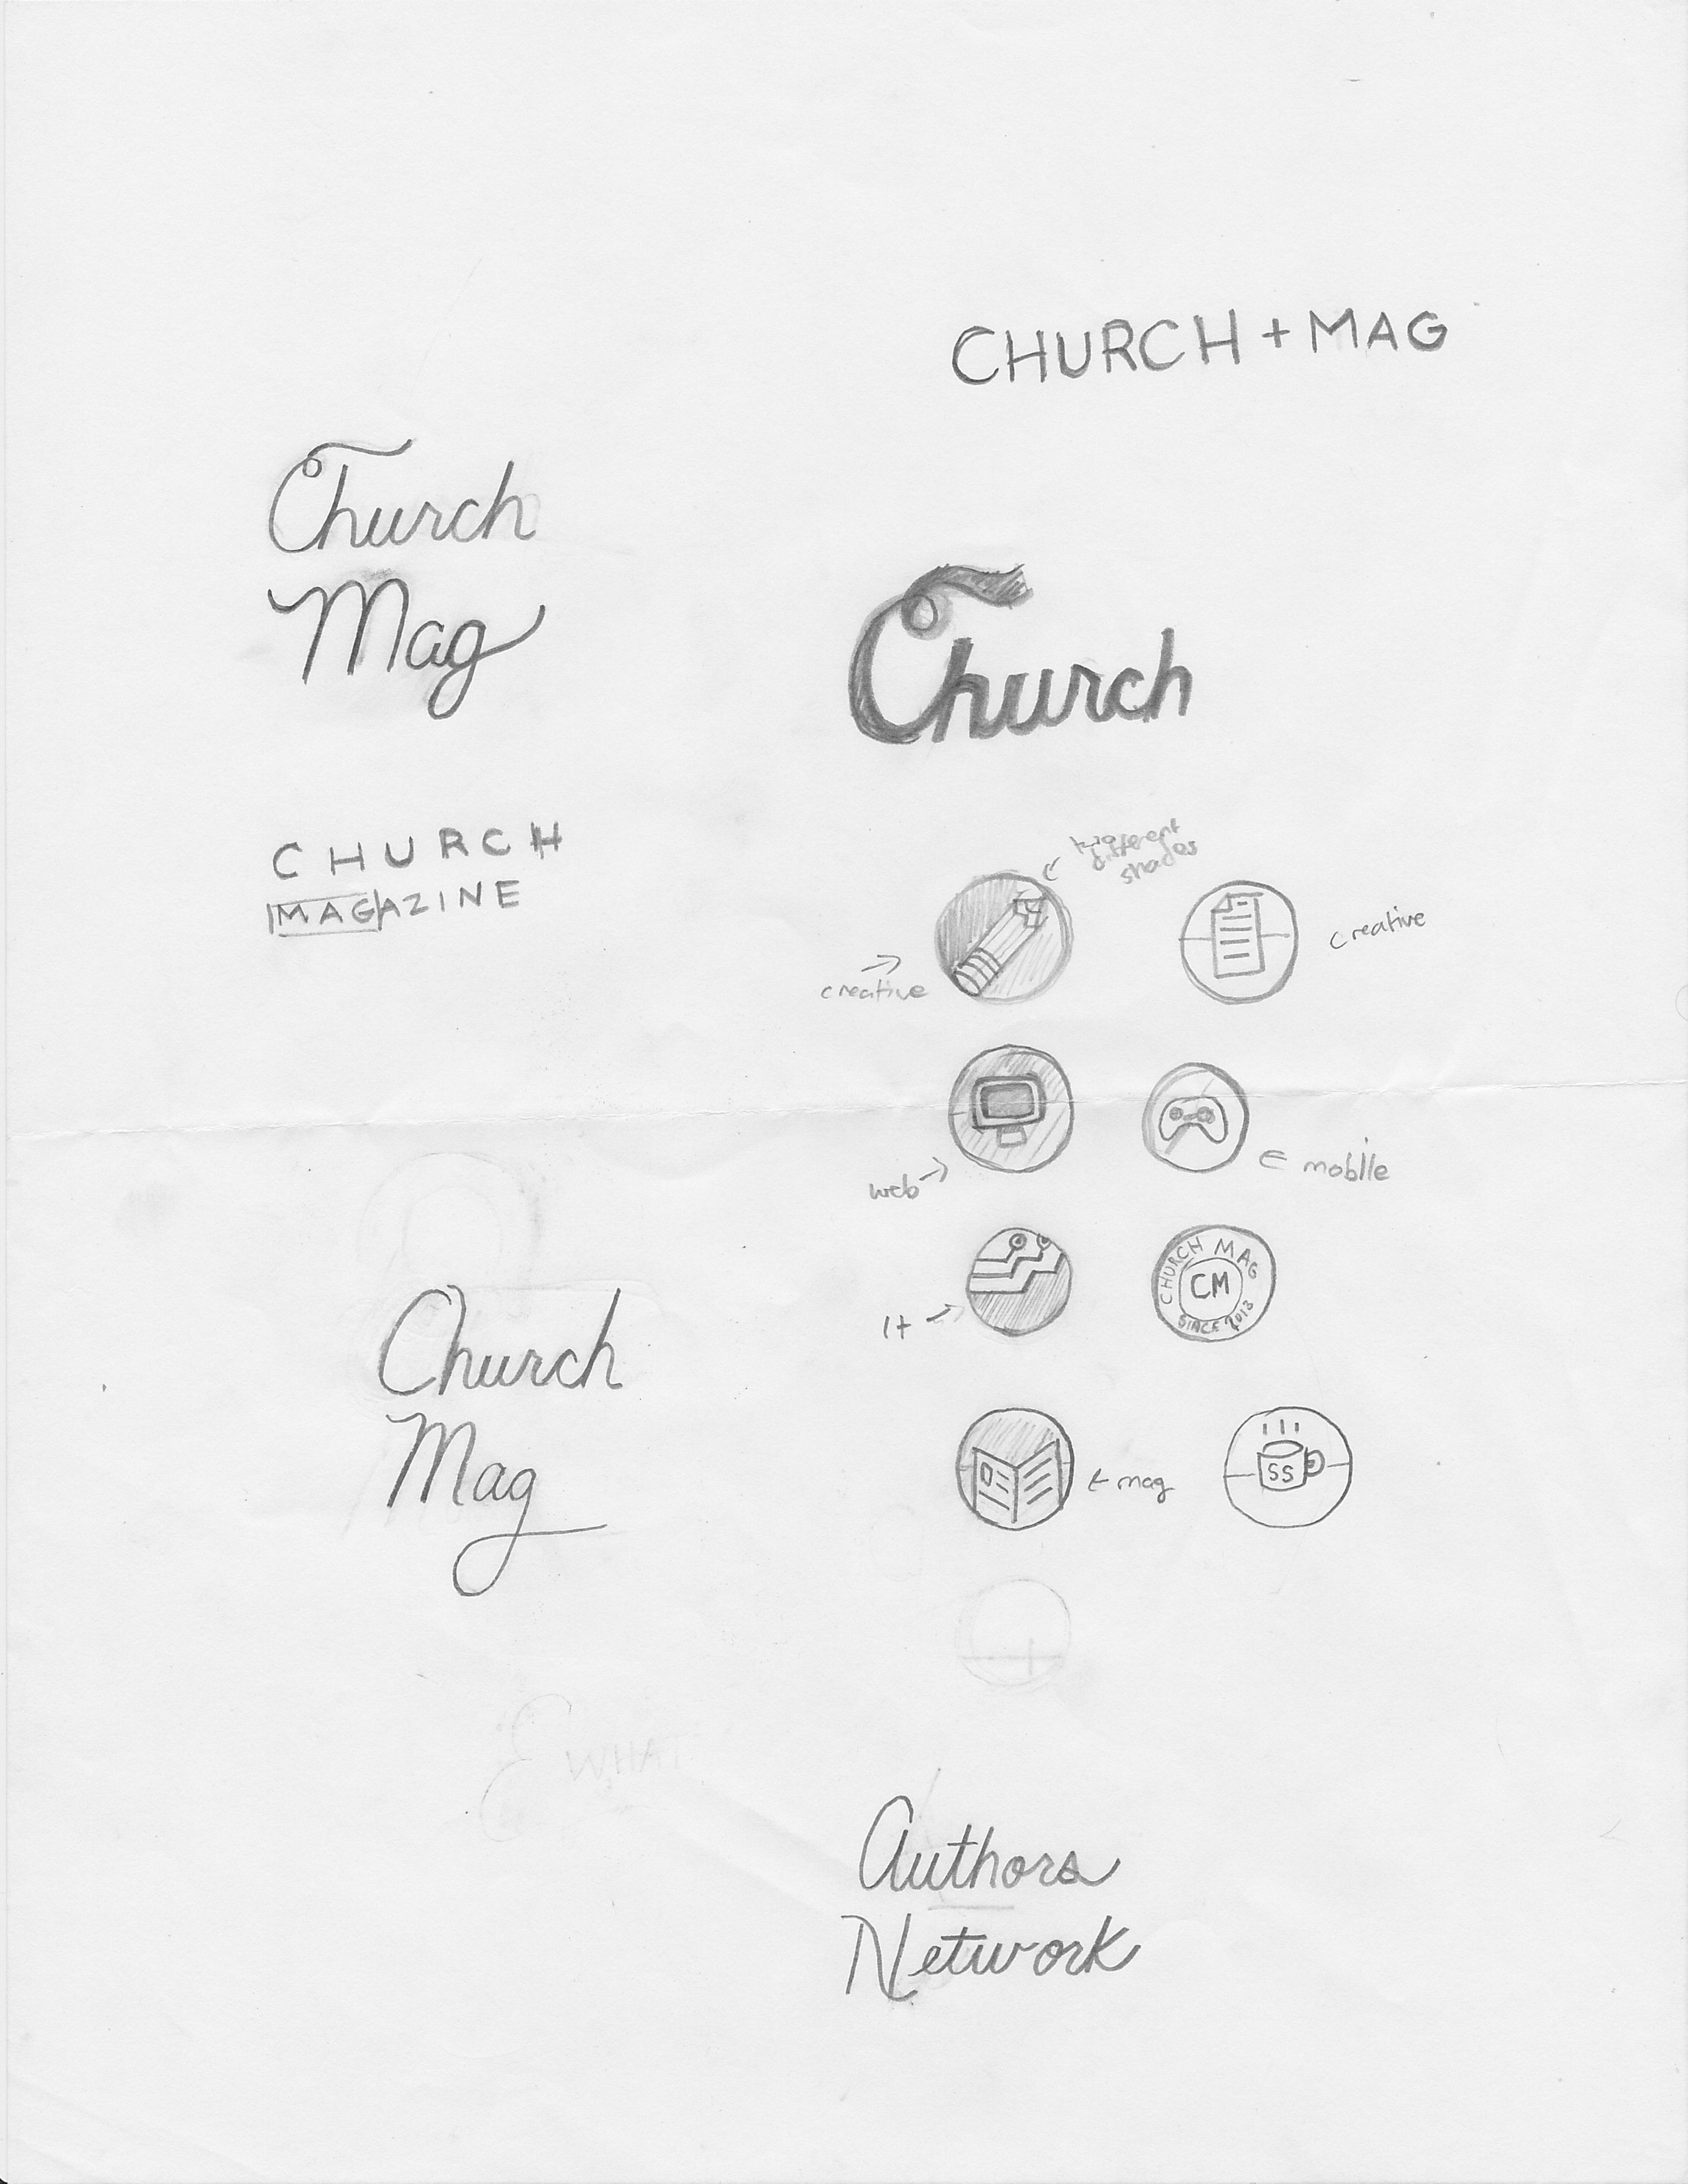 ChurchMag Re-Imagined: Creative Update